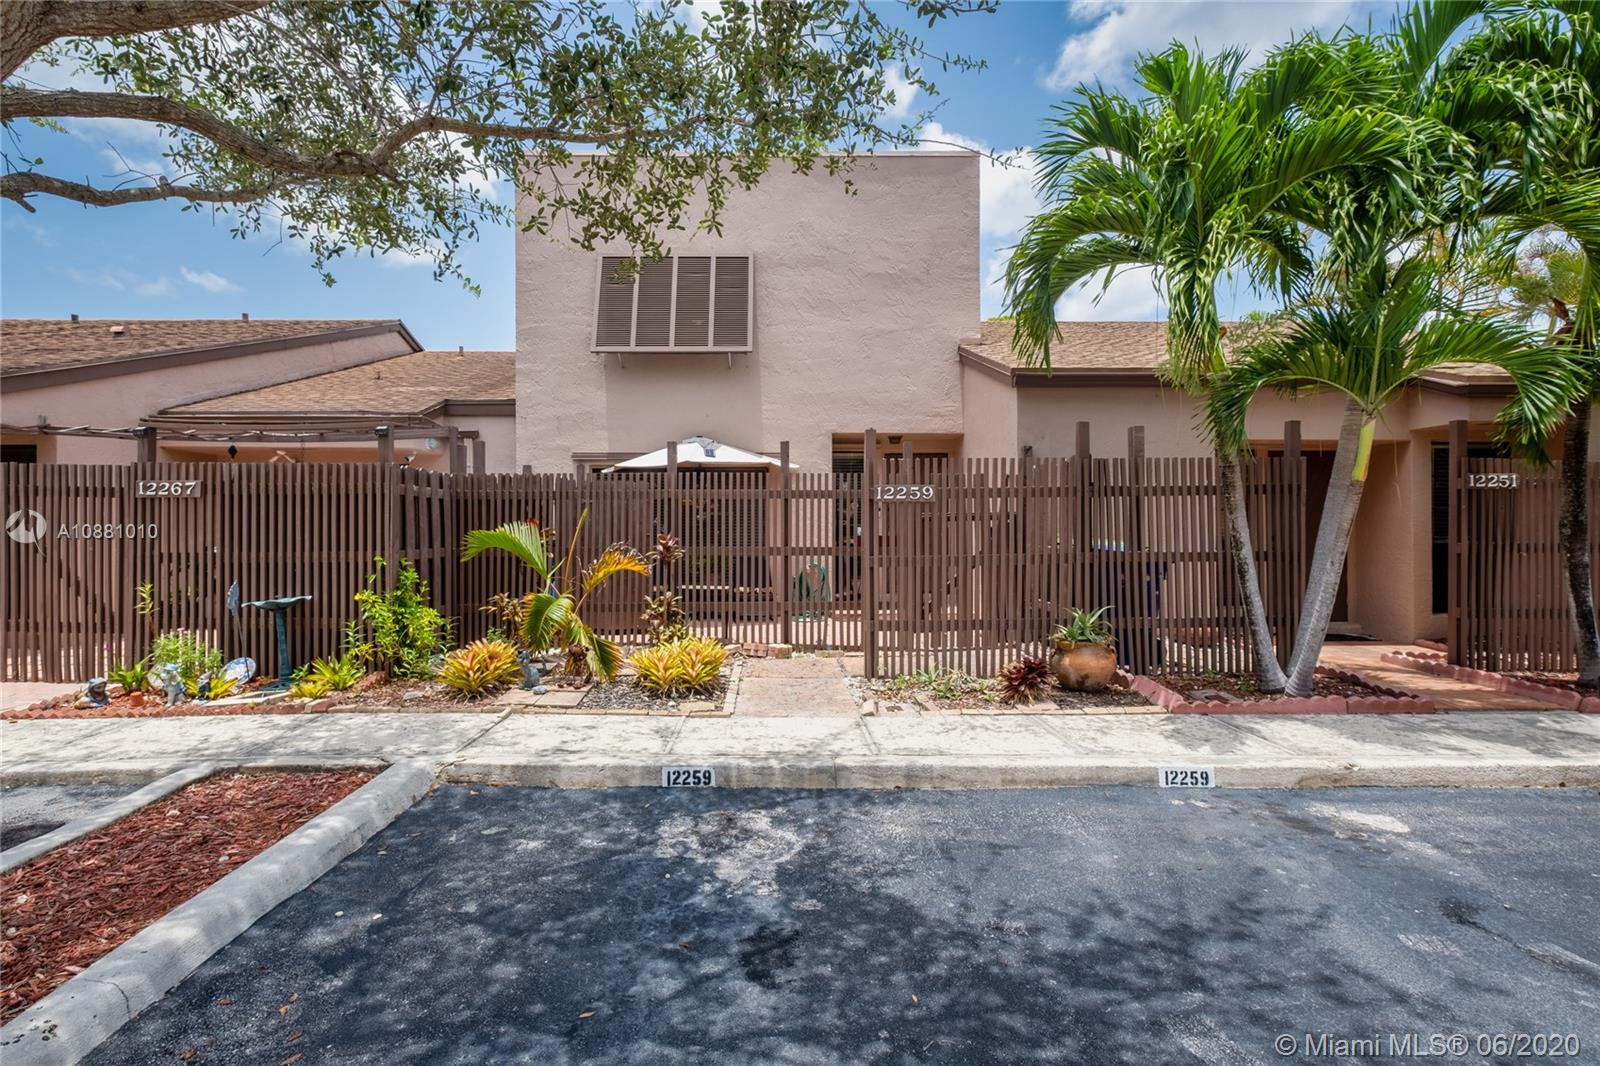 Make this your dream home! Ideal location with excellent schools, close proximity to highways, shopping, parks, and dining. This home boasts 3 bedrooms, 2.5 baths, upgraded open kitchen, oversized custom-made pantry, upgraded guest half bath, a spacious screened-in patio, split living room and kitchen layout, laminate floors throughout, and more! The best part? Your big dogs will love it here! This is home! Flamingo Villas is pet-friendly, guard-gated, and nicely maintained, with amenities such as a pool, tennis courts, playground, and more! Stop by for a visit and you won't want to leave. Welcome home!